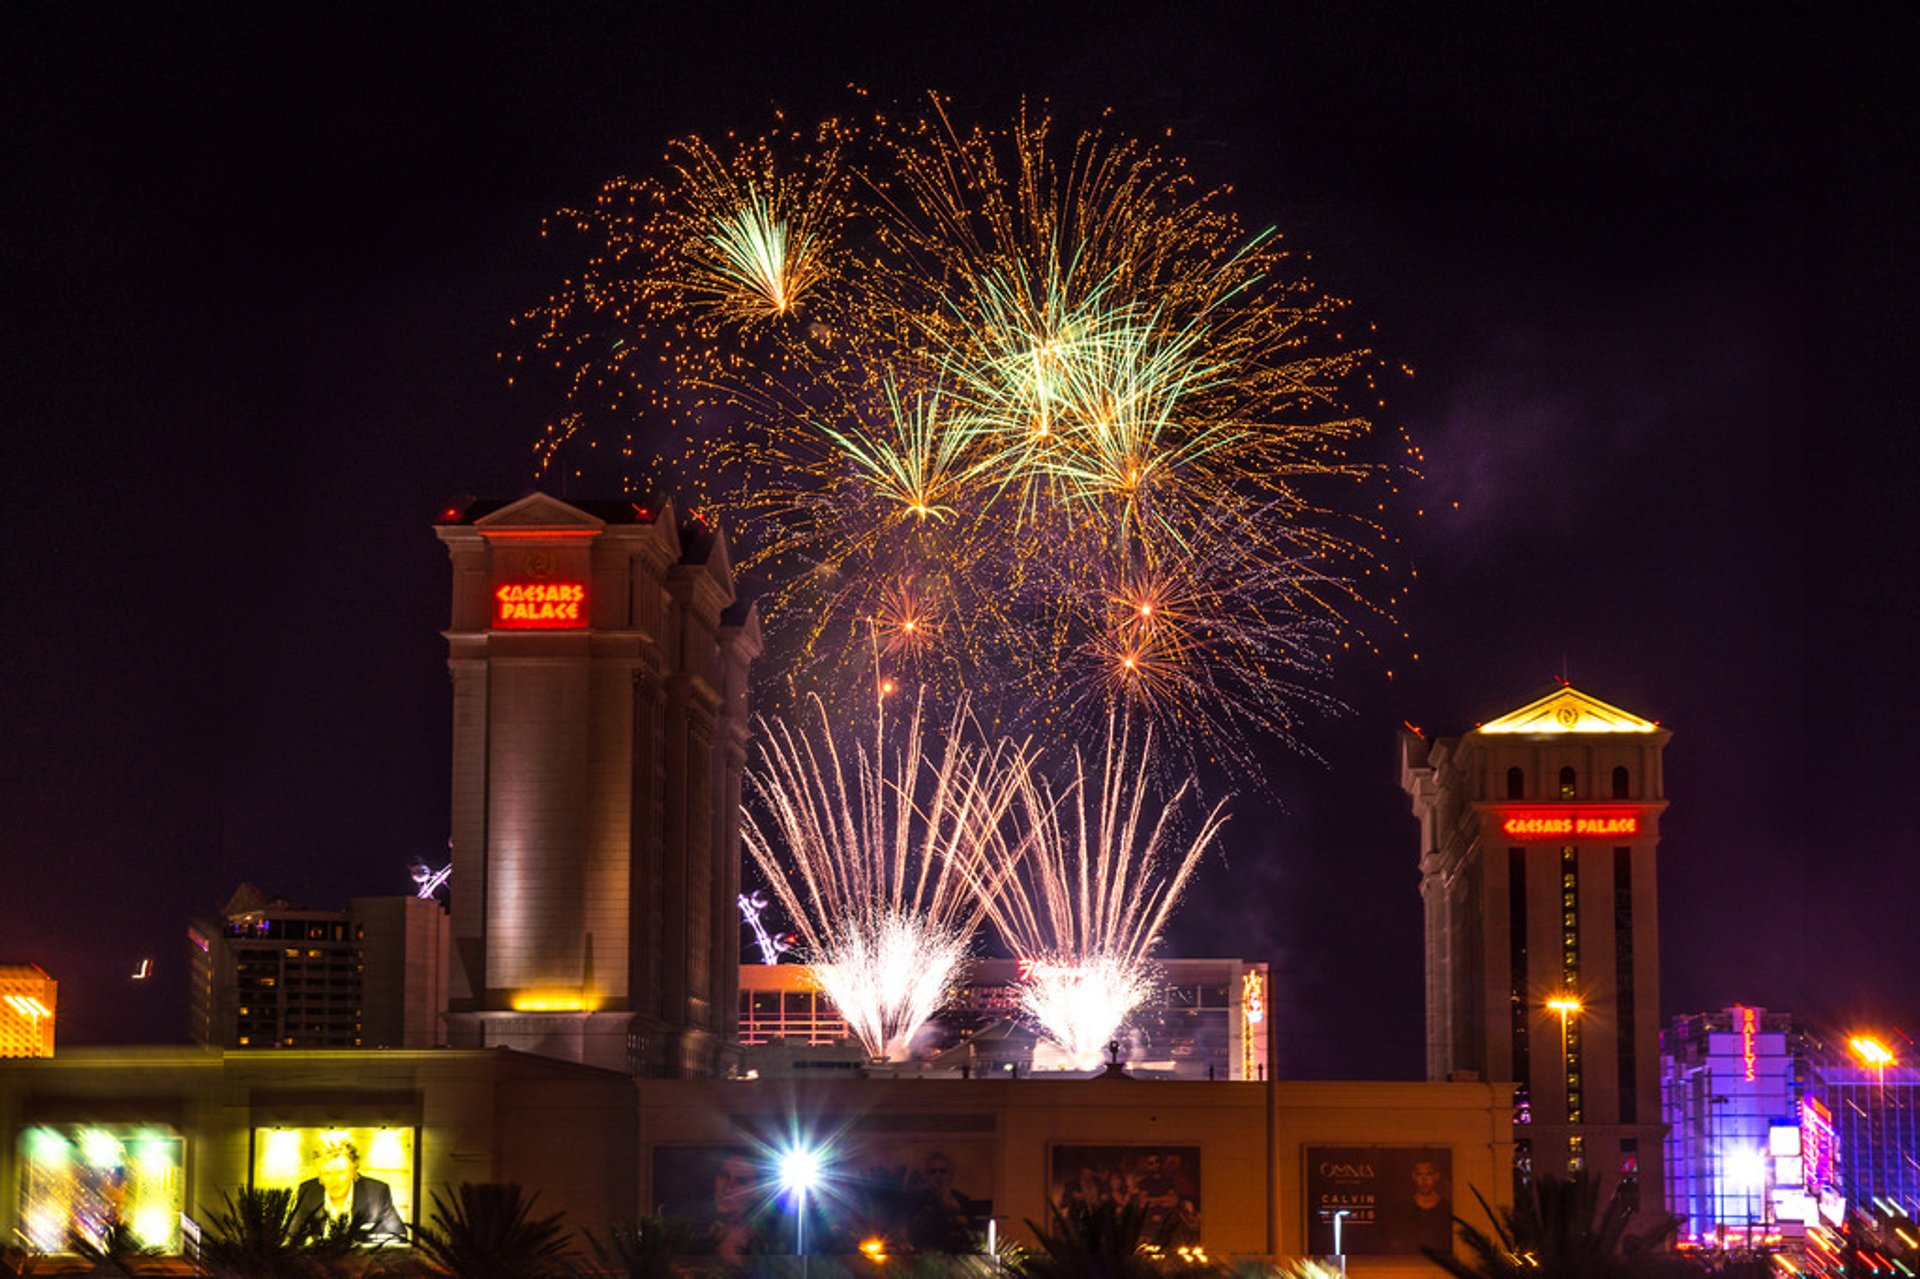 4th of July fireworks at Caesars Palace in Las Vegas 2020